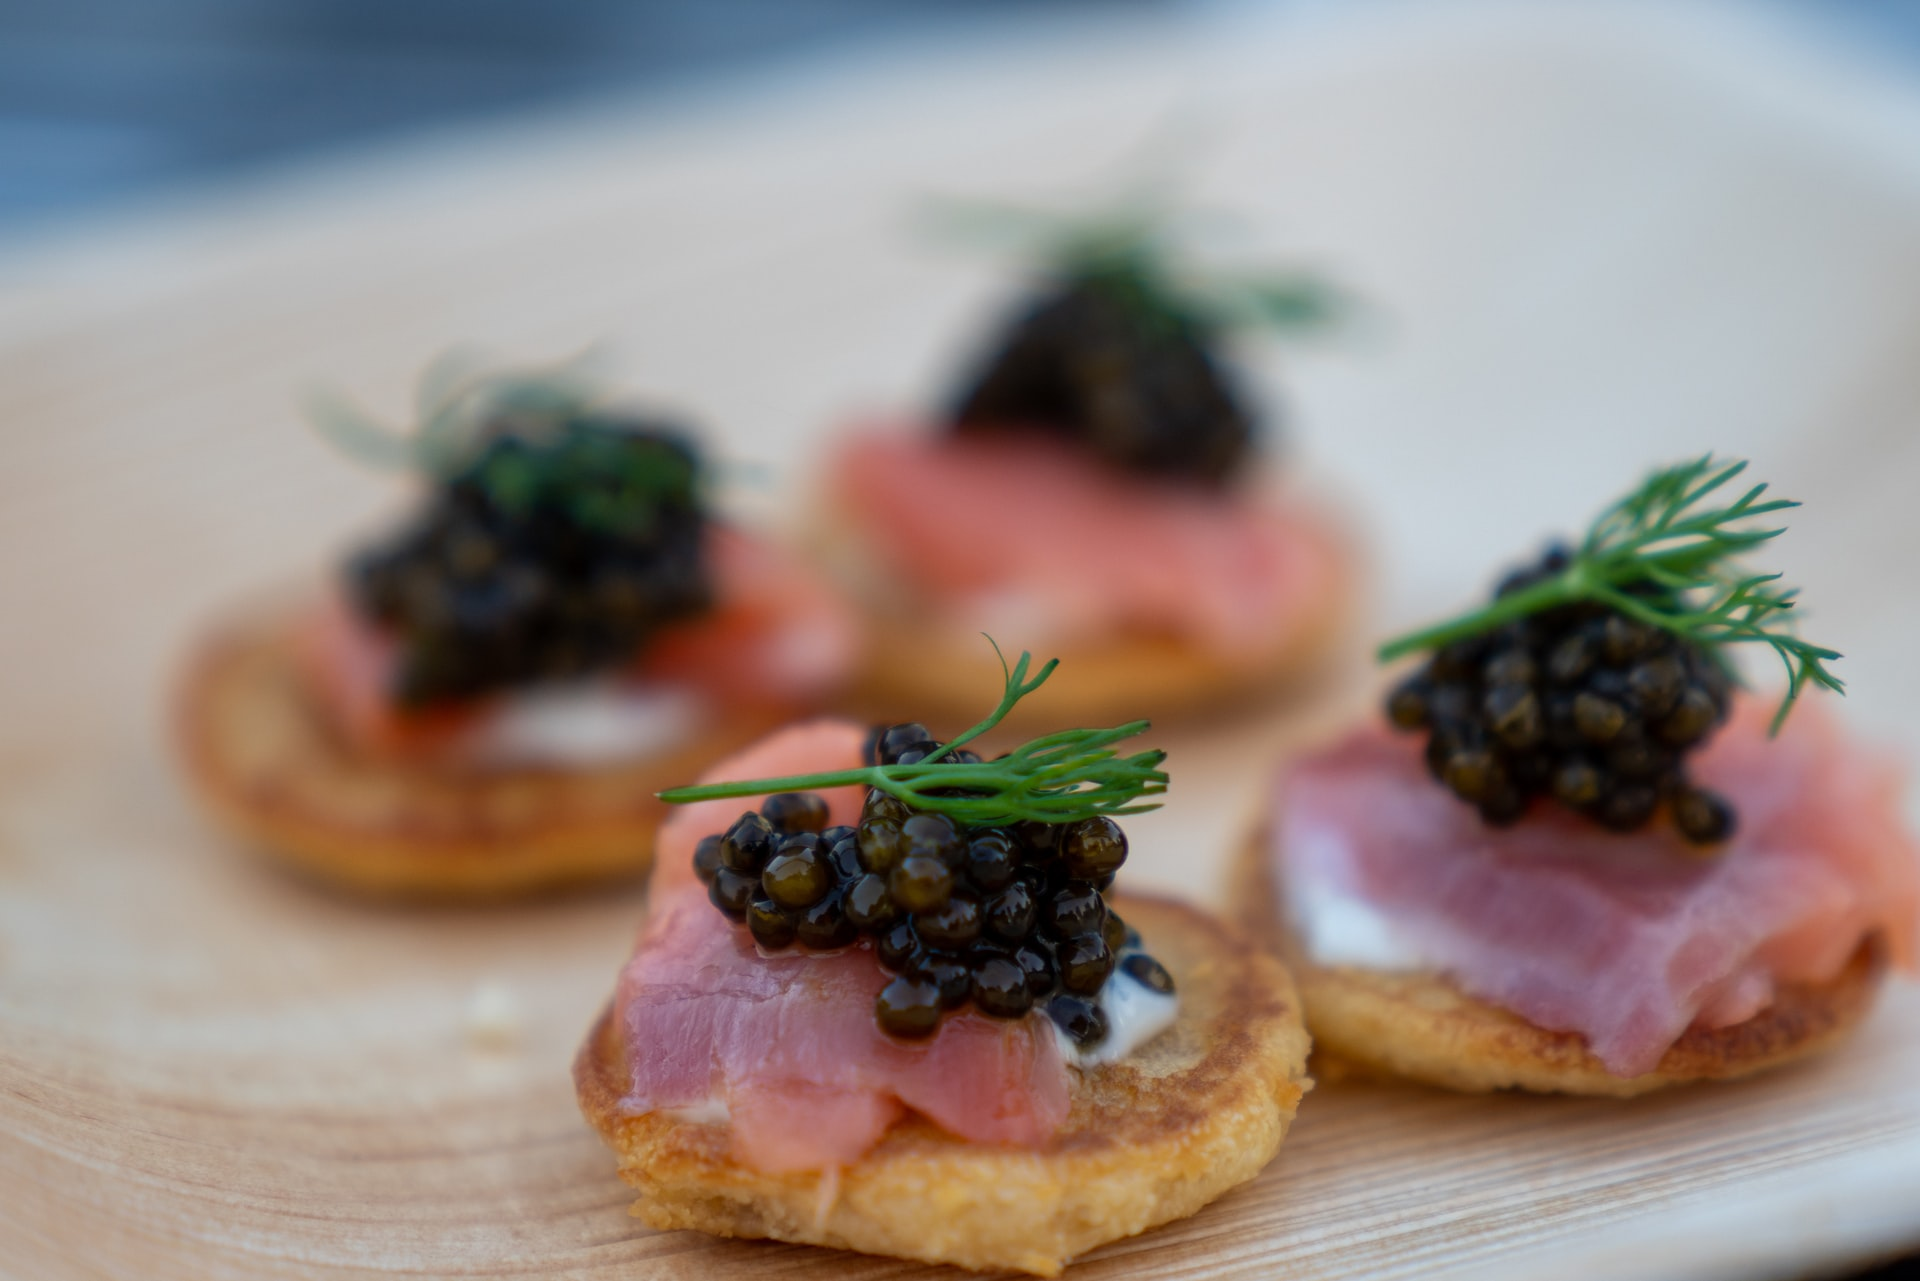 Image for blog Belly Up to the Caviar Bar at Apero